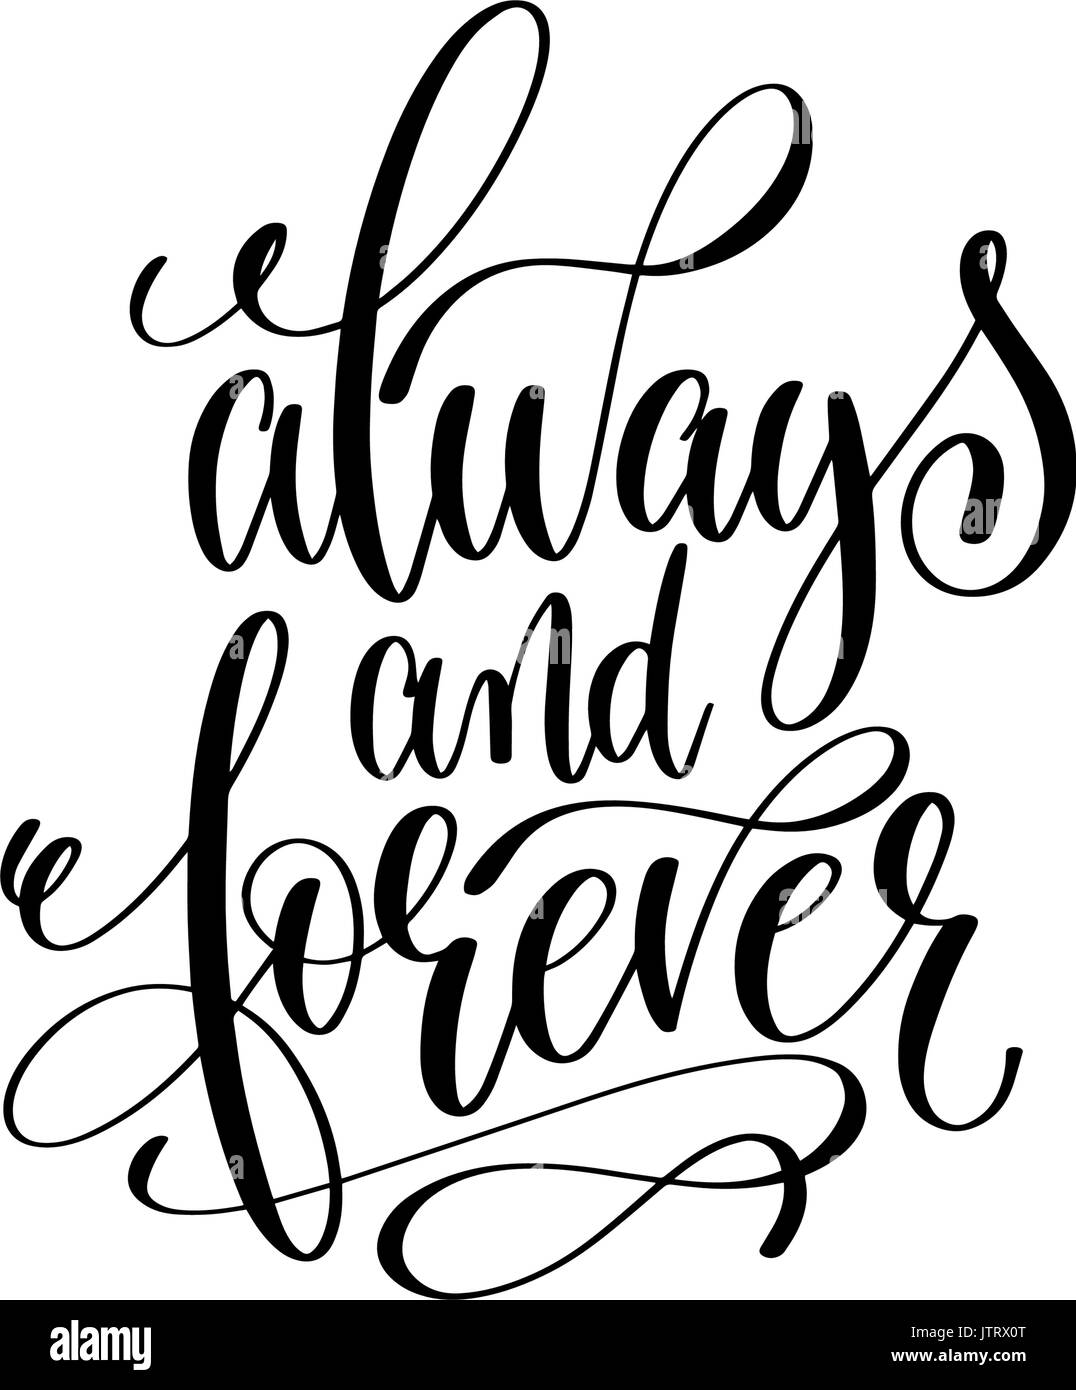 Download always and forever black and white hand lettering Stock ...